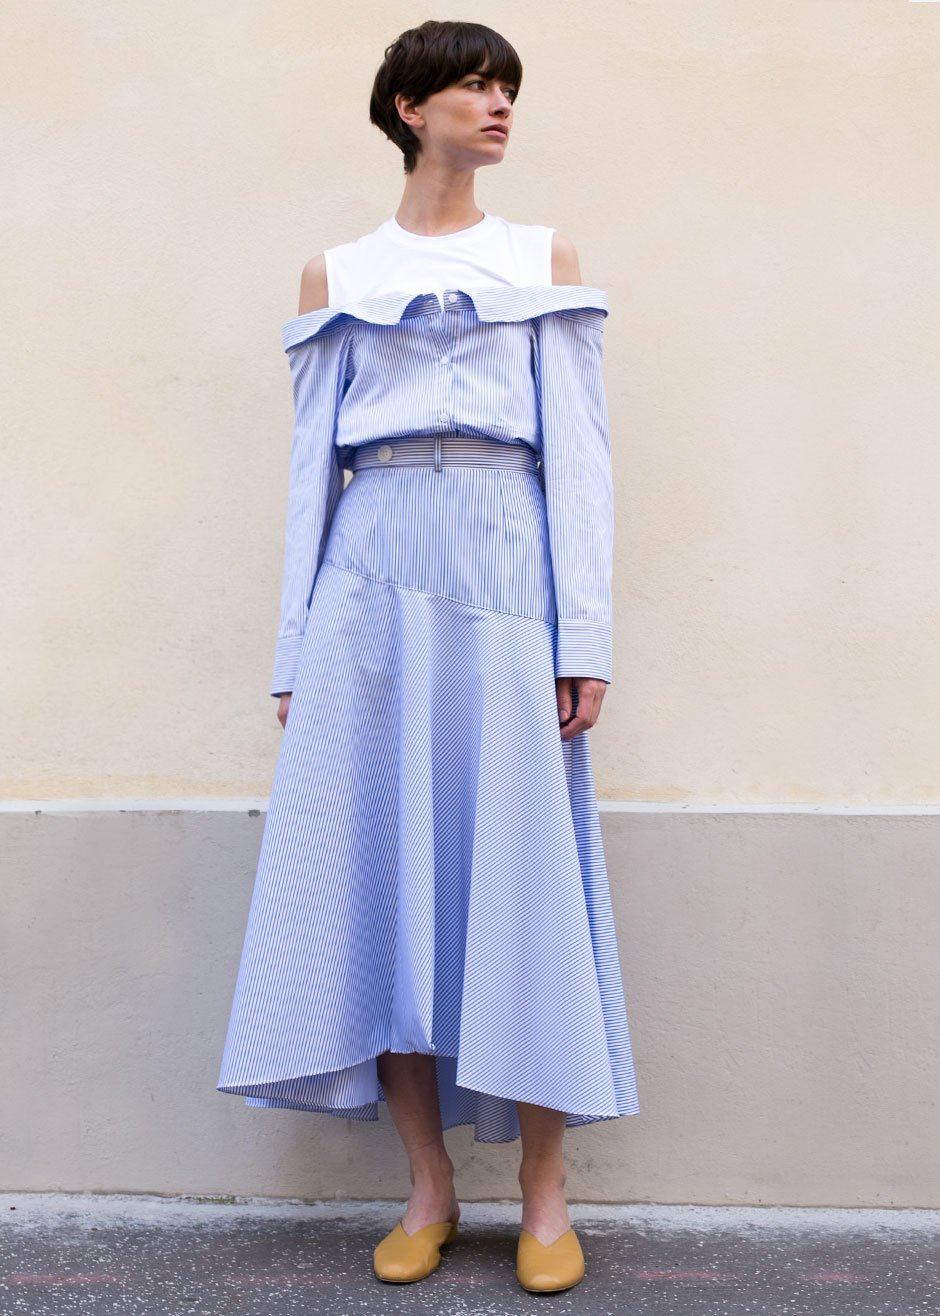 The Frankie Shop  27 Midi Skirts You Need in Your Closet ASAP Frankie Shop Chambray Striped